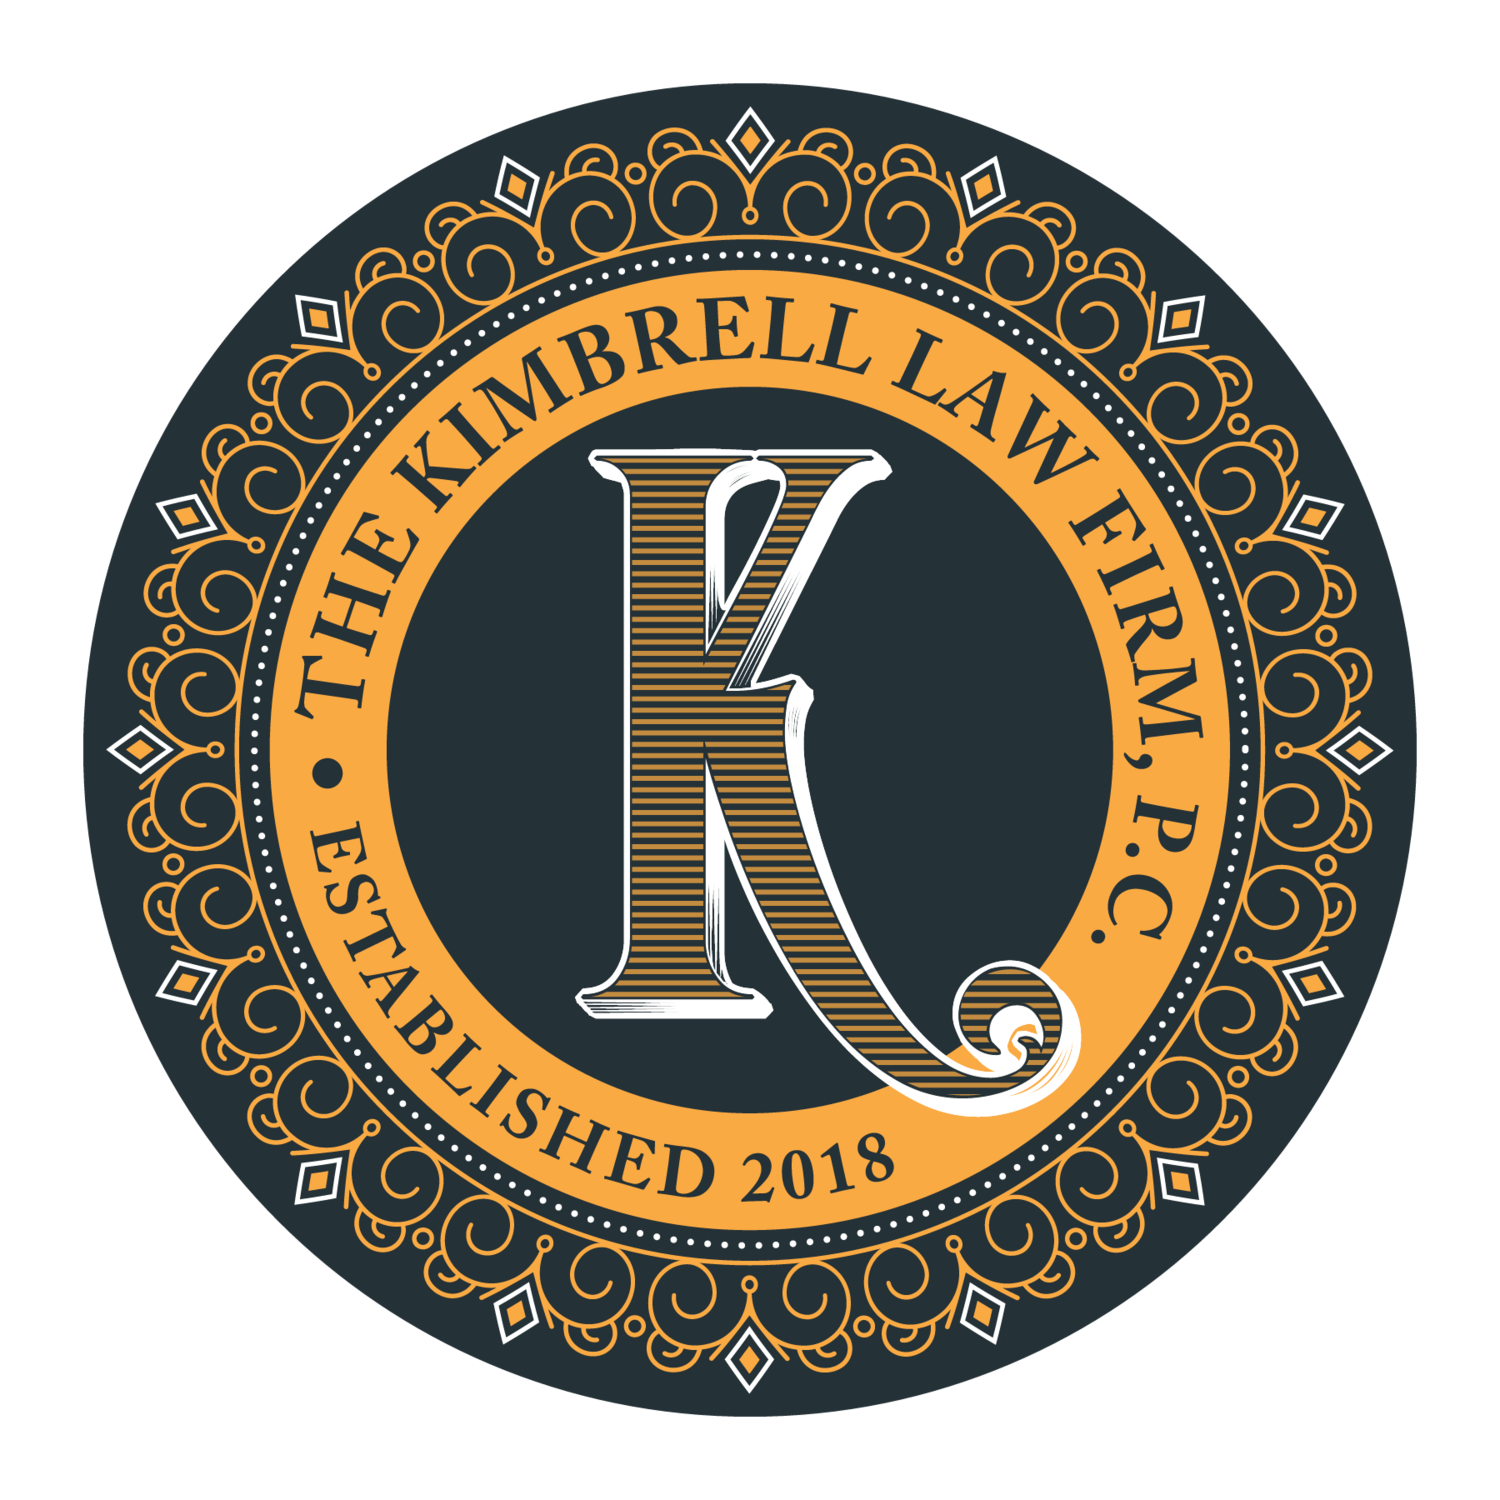 The Kimbrell Law Firm, P.C.